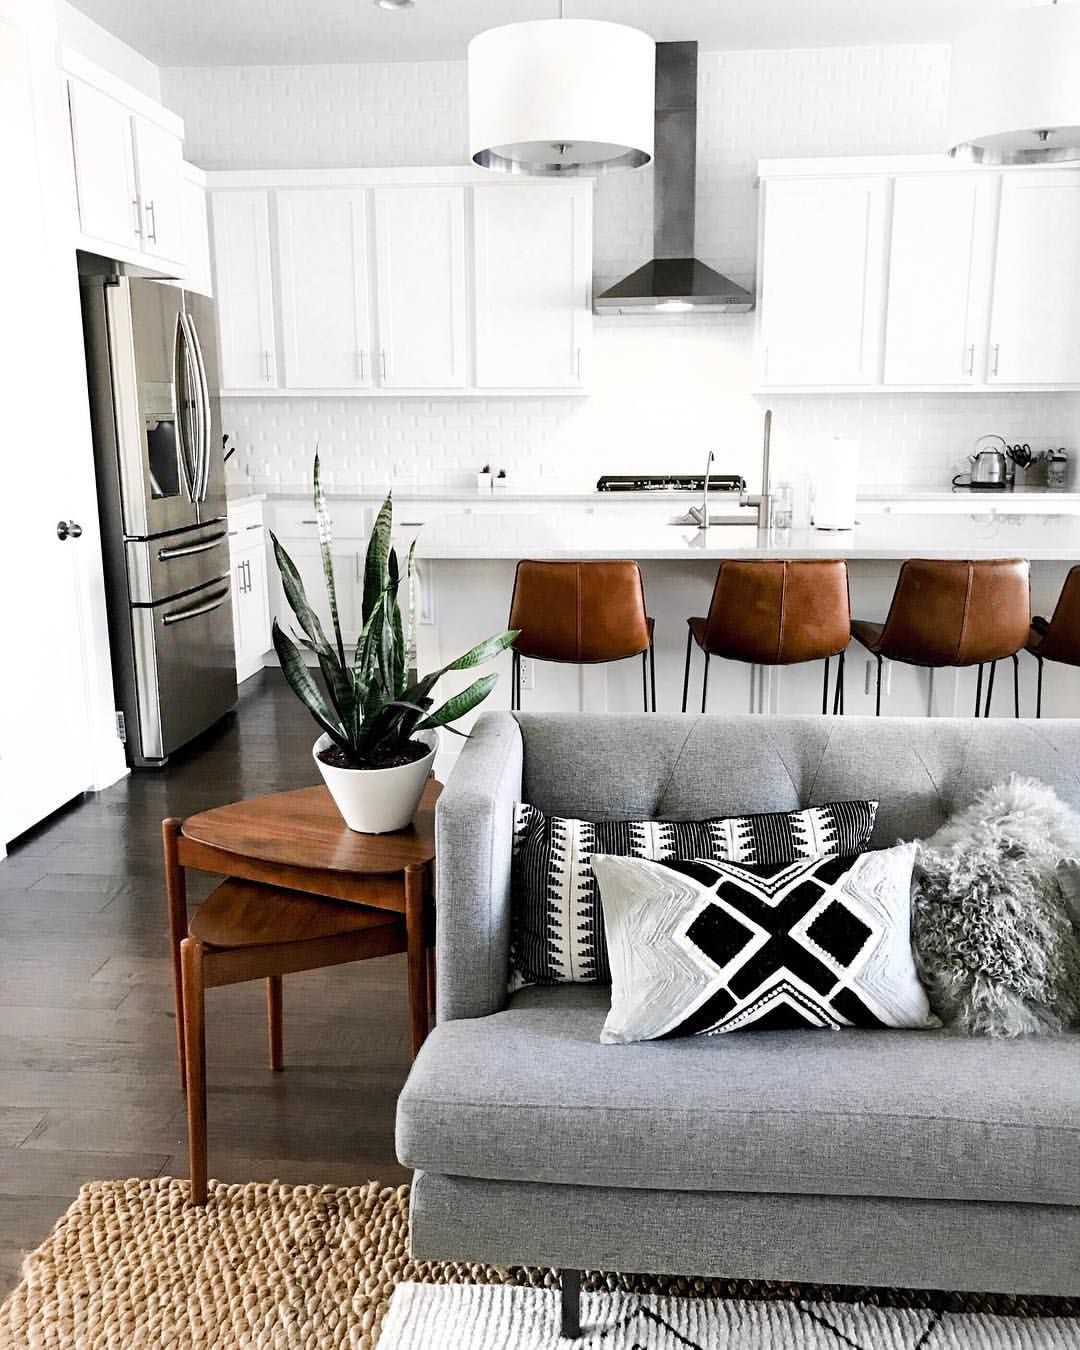 camel and gray living room beautiful paint colors for rooms blacks grays in a modern minimalist dream kitchen haus pinterest